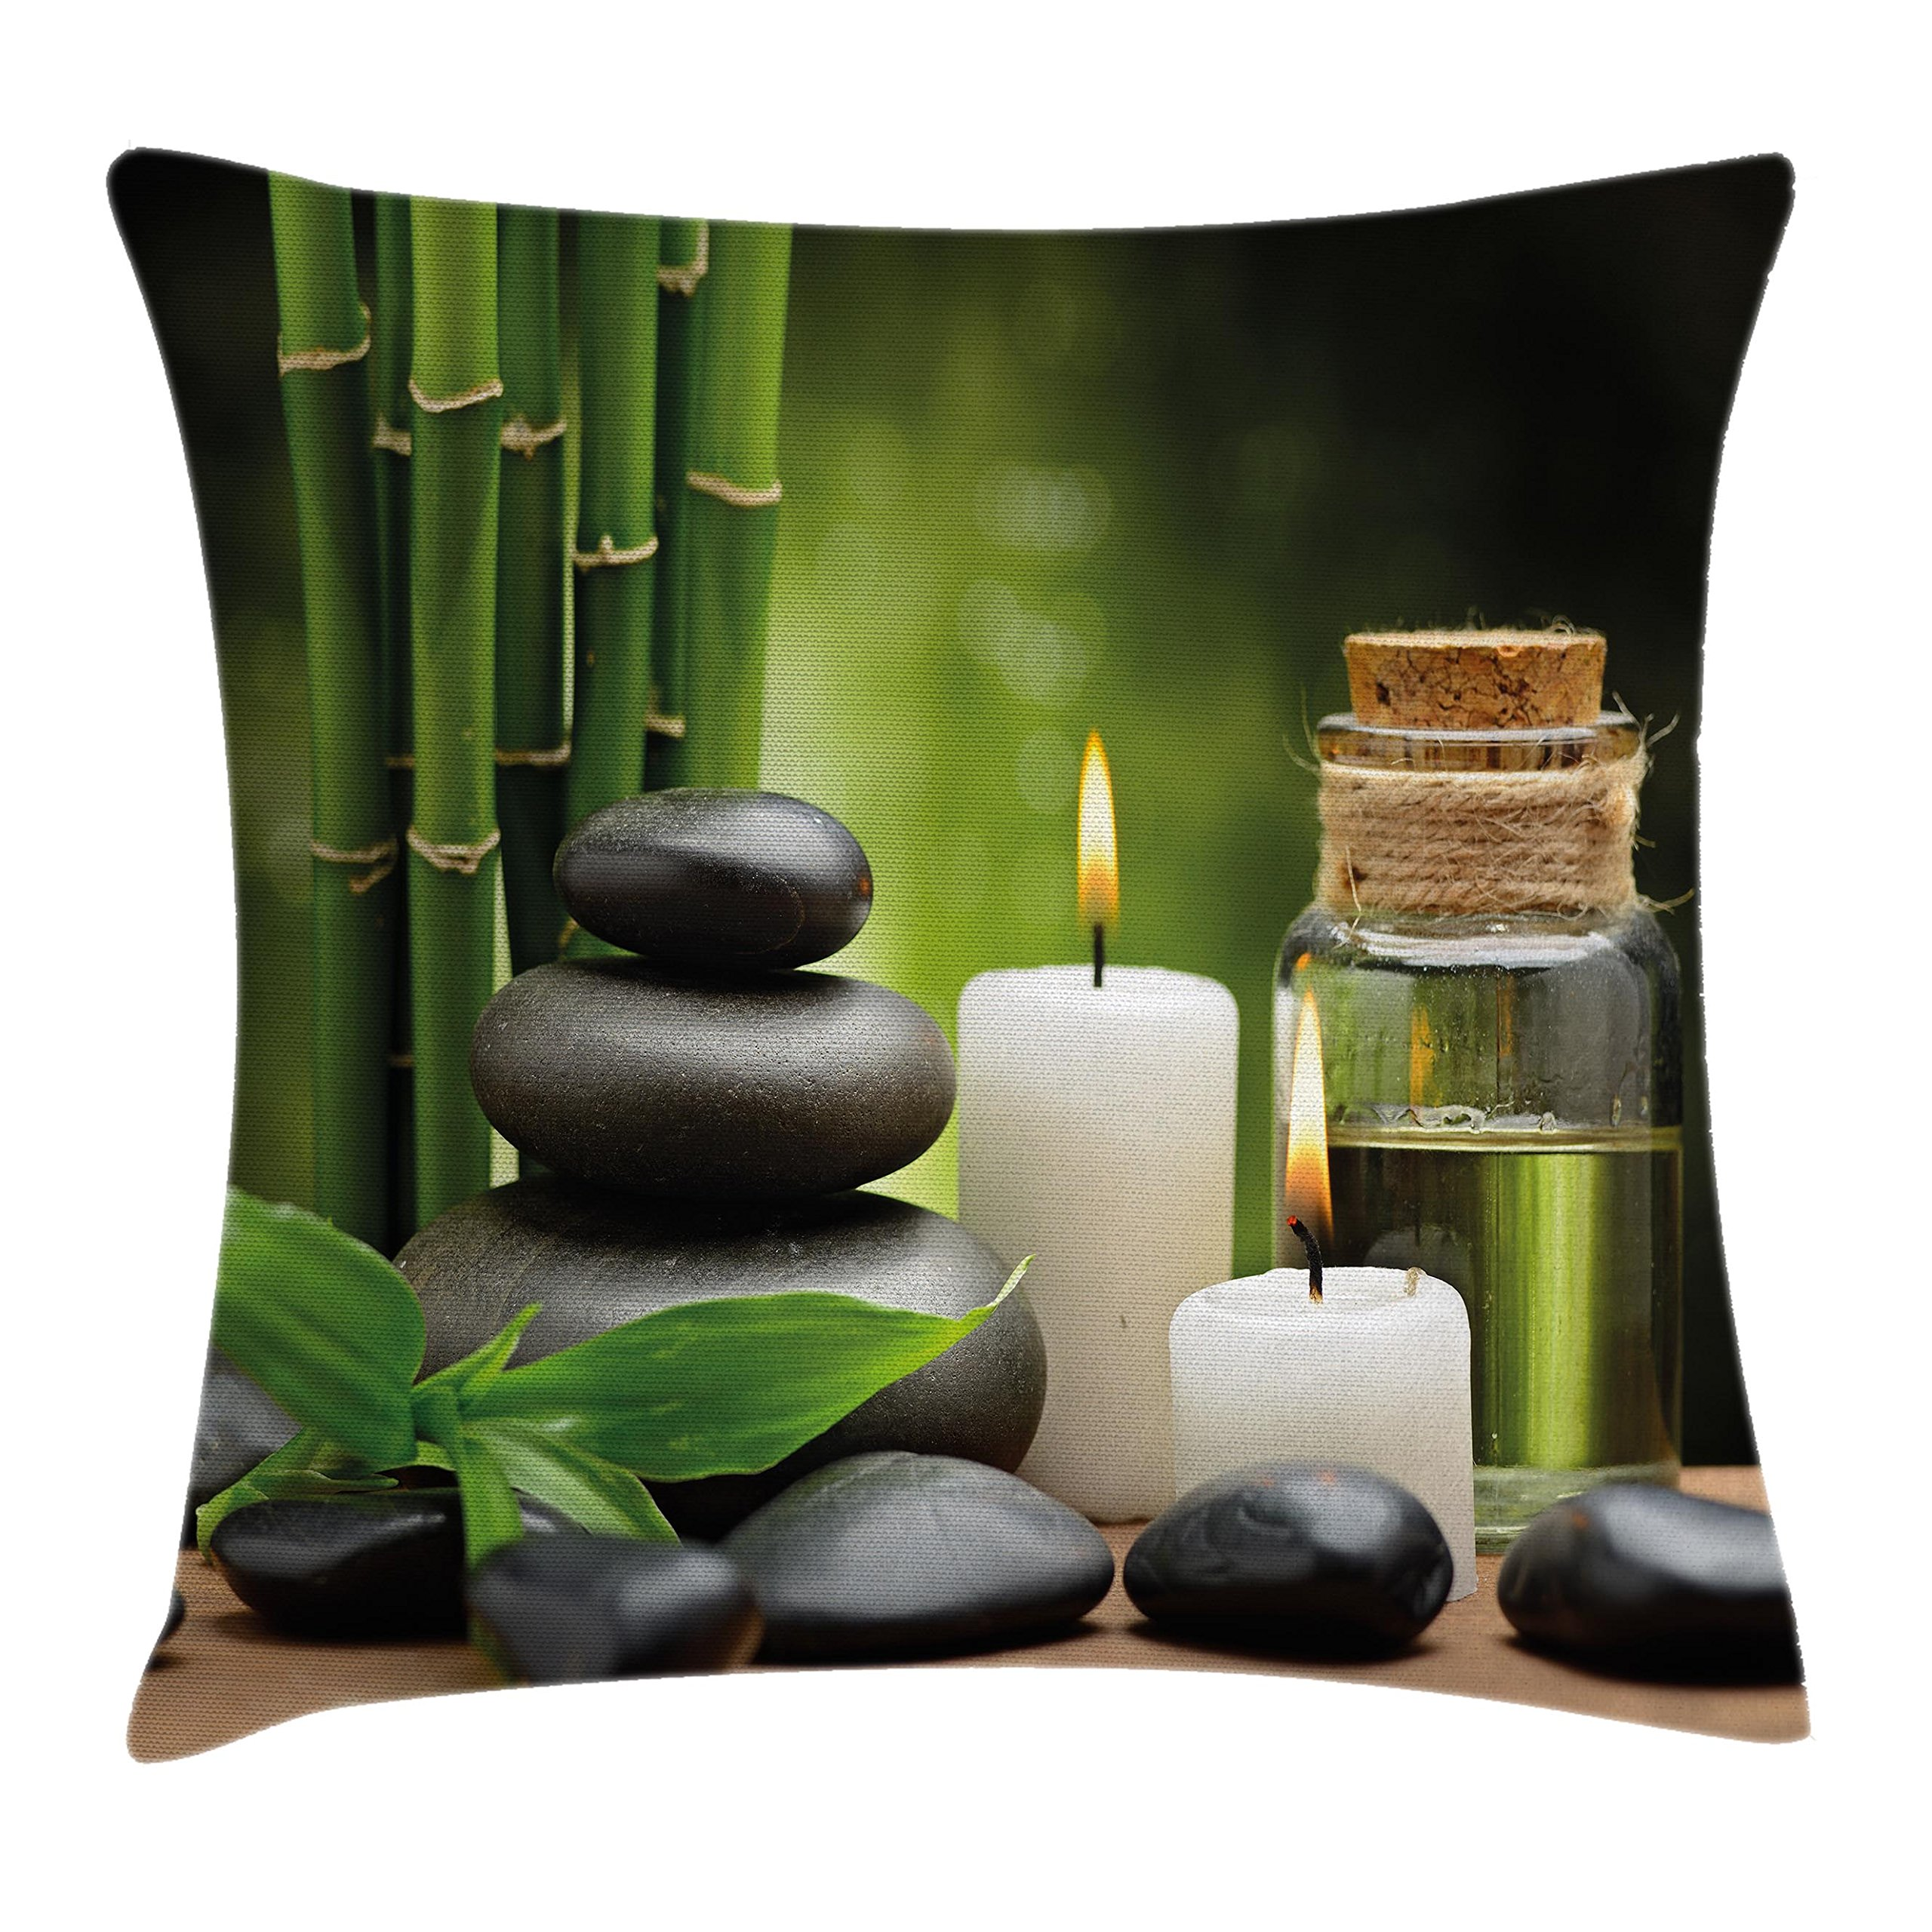 Ambesonne Spa Decor Throw Pillow Cushion Cover, Hot Massage Rocks Combined with Candles and Scents Landscape of Bamboo, Decorative Square Accent Pillow Case, 16 X 16 Inches, Green White and Black by Ambesonne (Image #1)